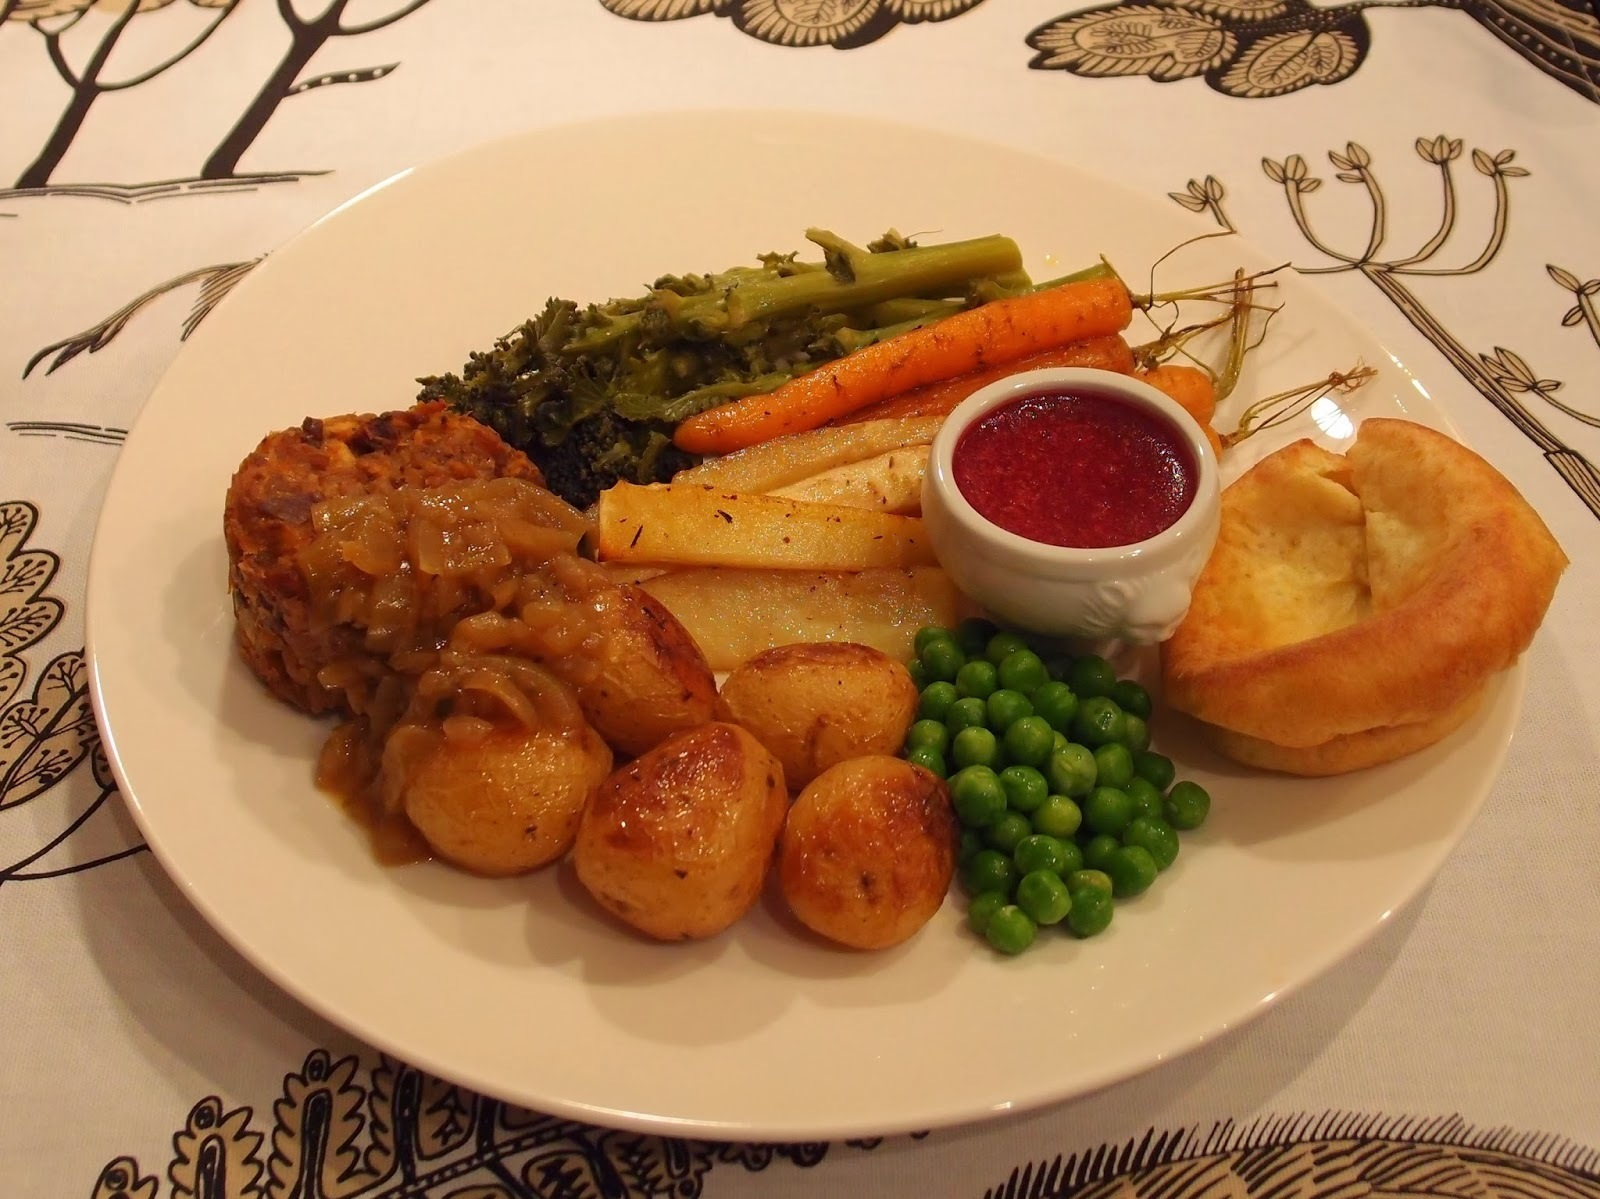 British style vegetarian Sunday roast